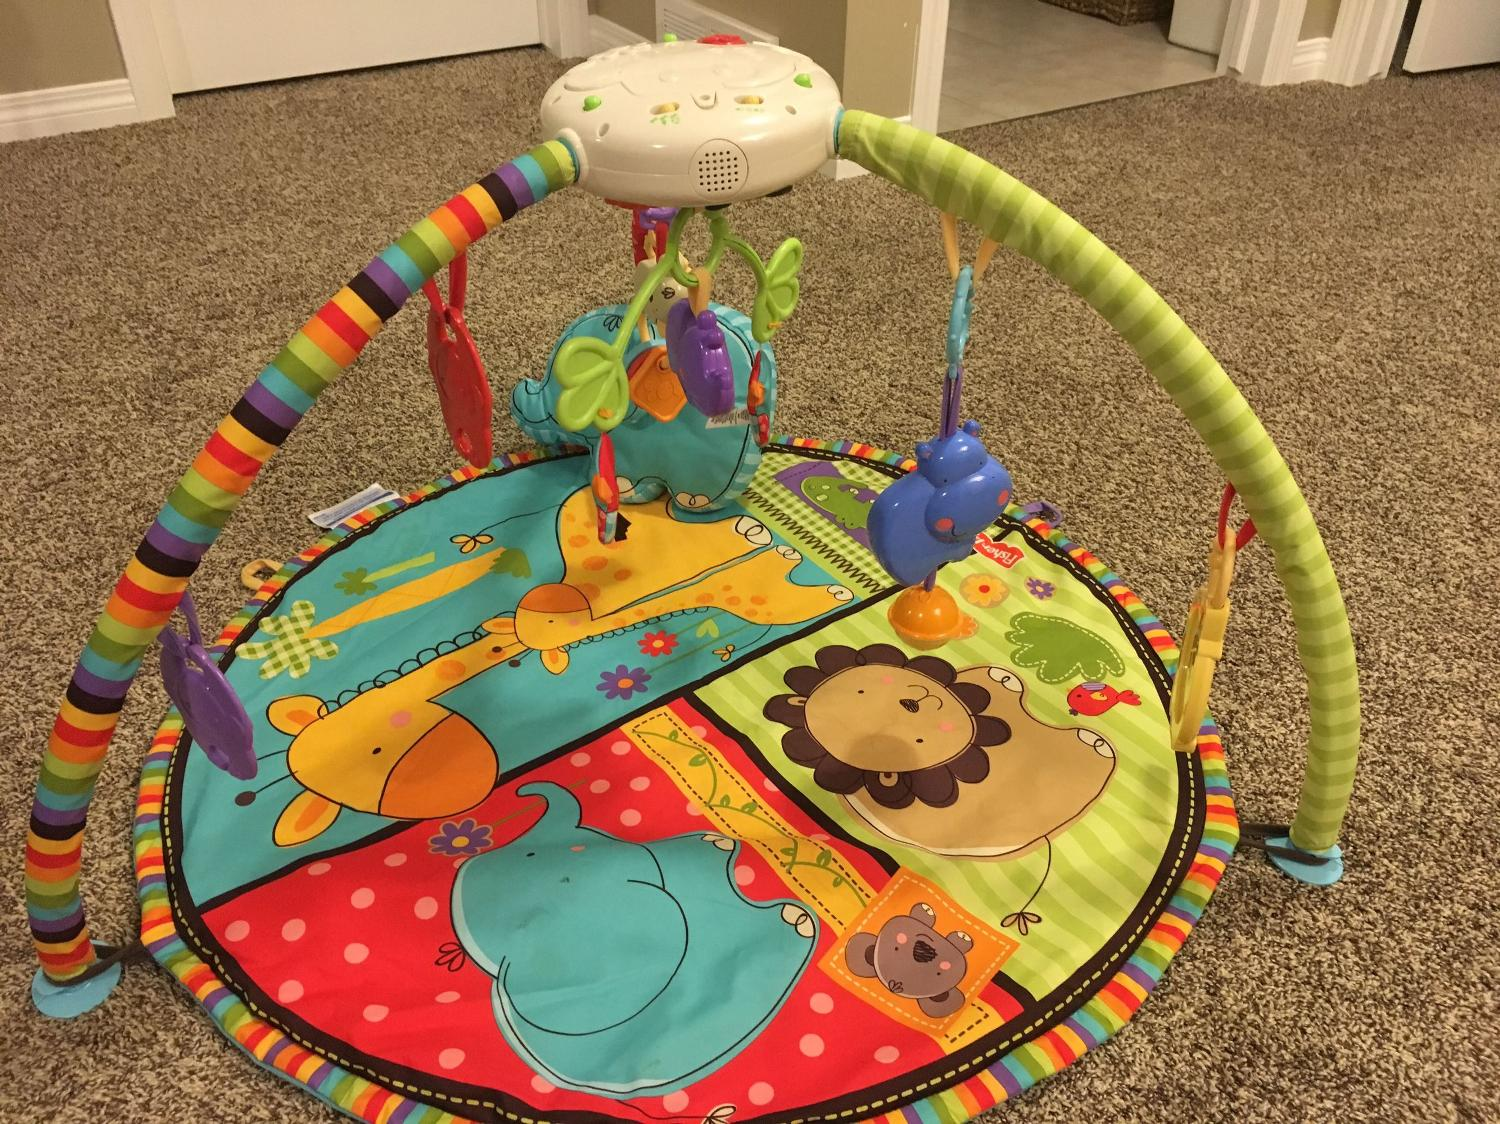 Best fisher price luv u zoo deluxe musical mobile mat for sale in calgary alberta for 2019 - Tapis d eveil fisher price zoo deluxe ...